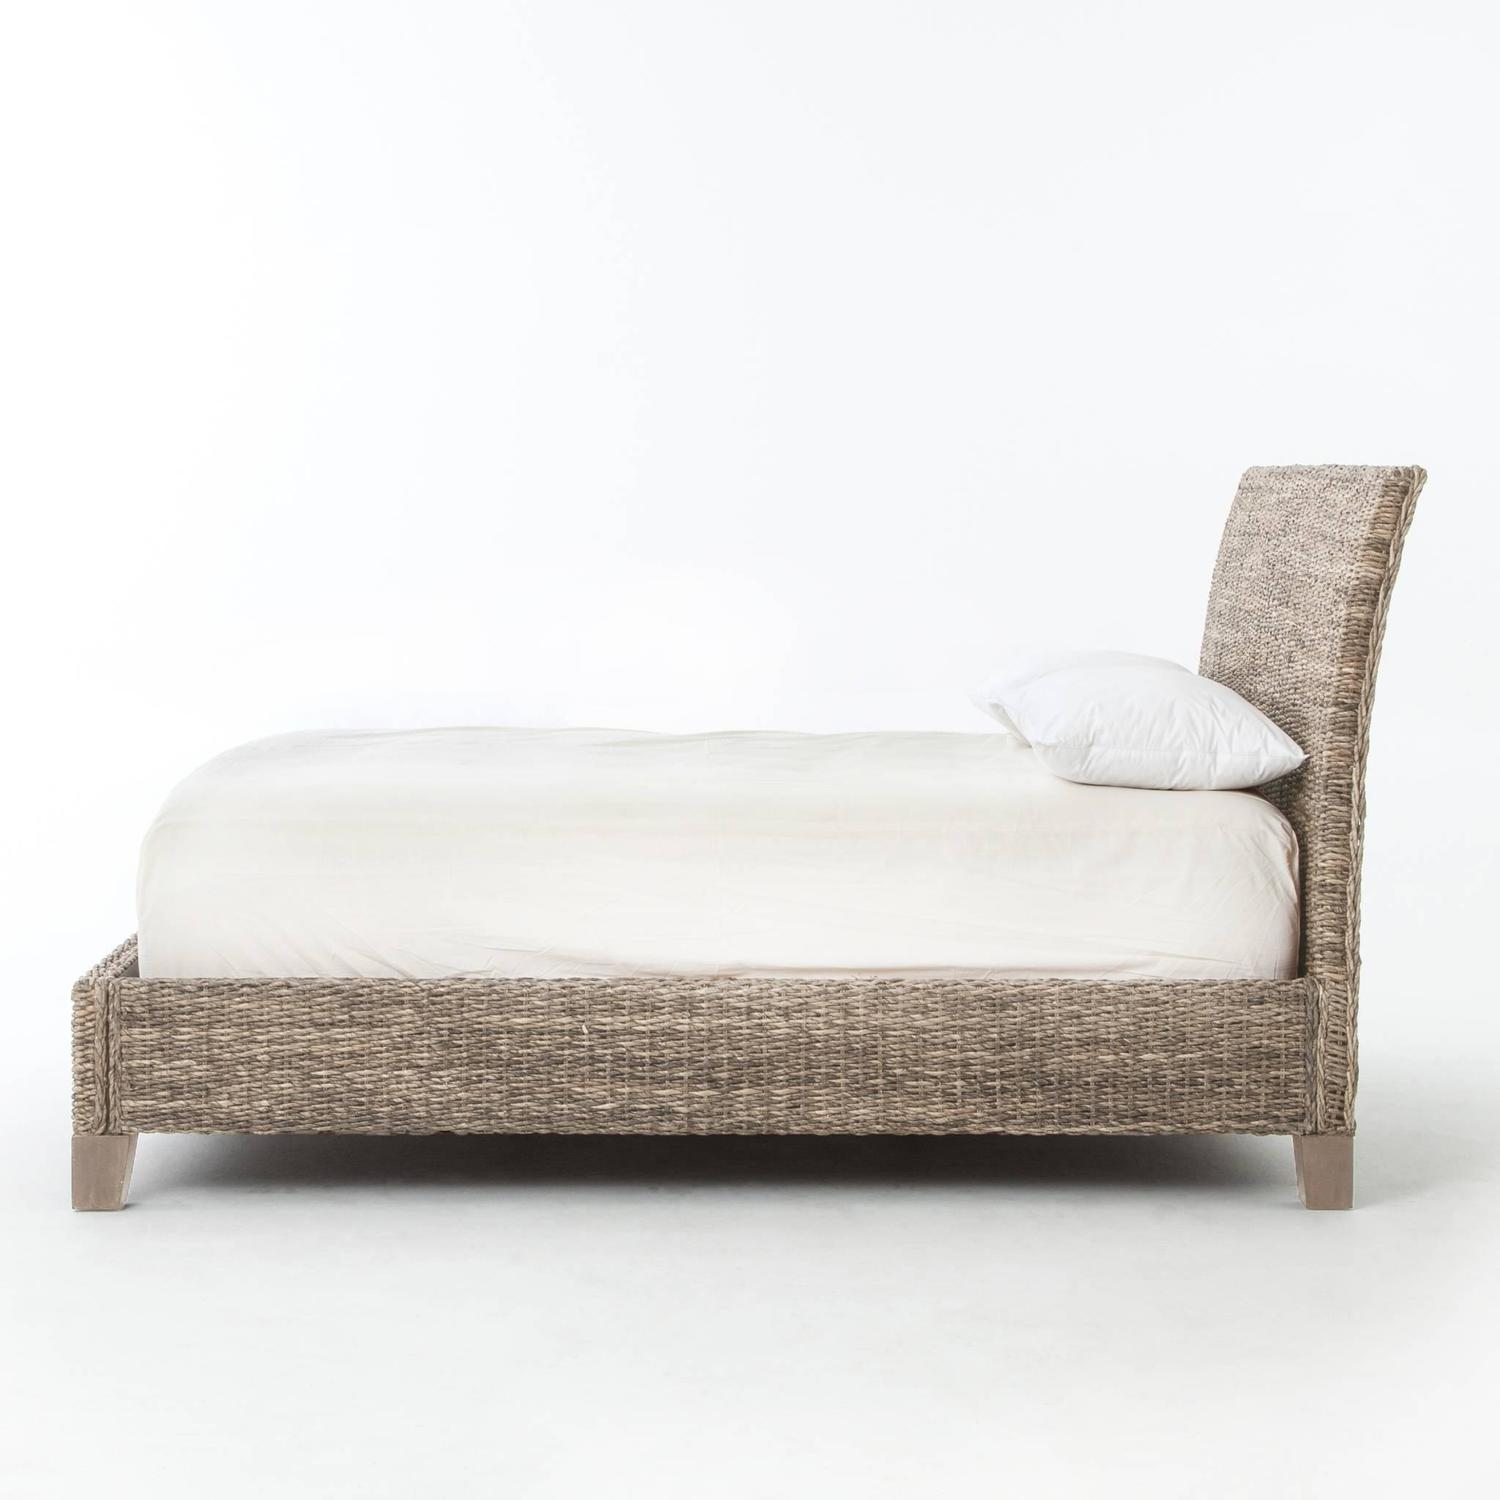 woven banana leaf bed for sale at 1stdibs